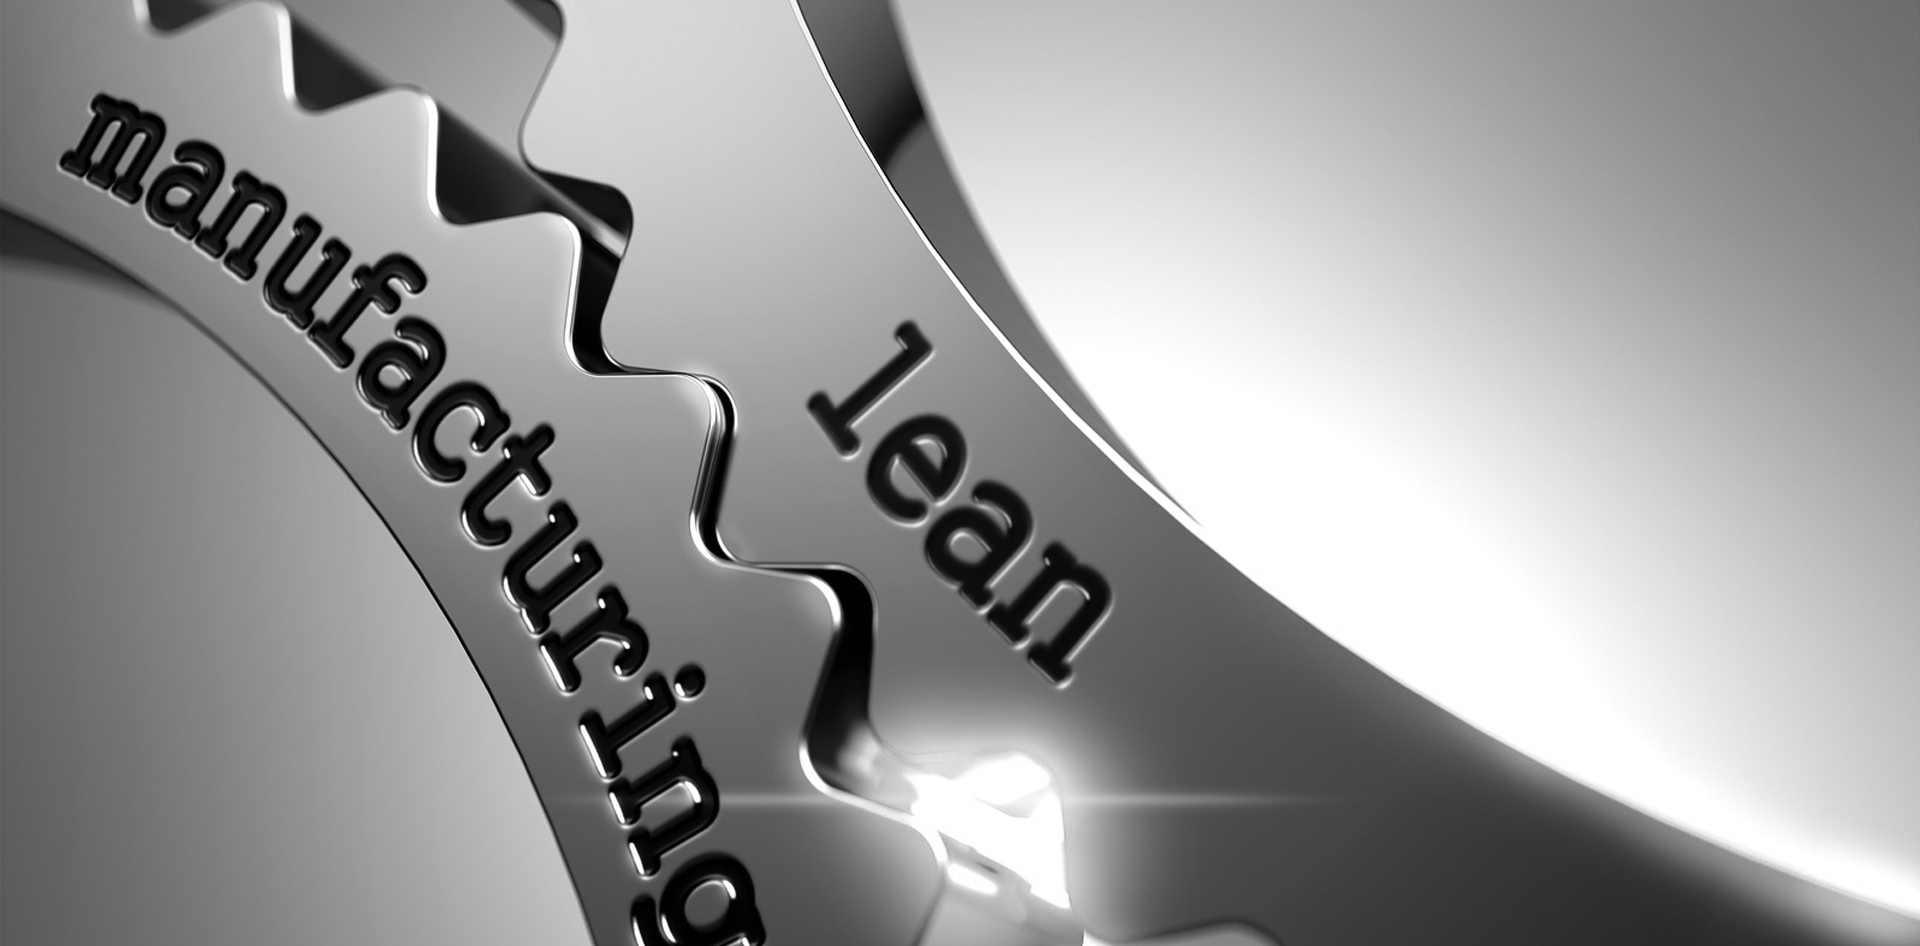 Coaching in Lean Manufacturing